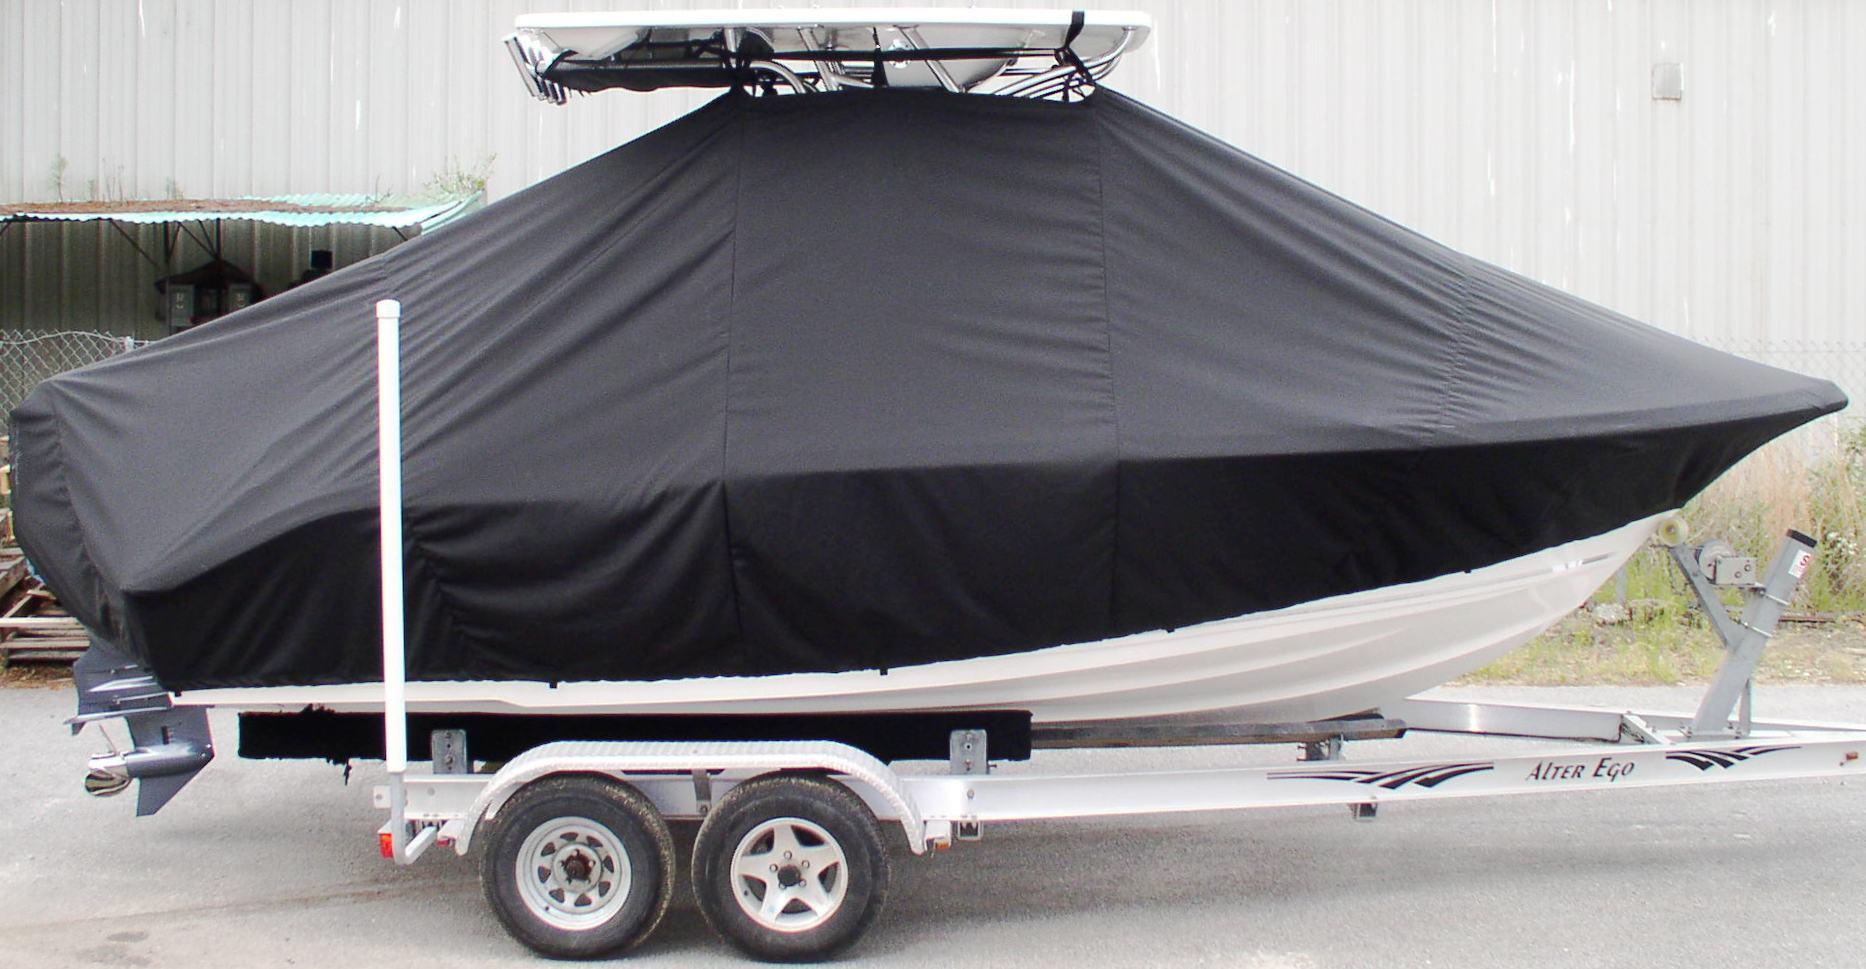 Key West 219FS, 20xx, TTopCovers™ T-Top boat cover, starboard side